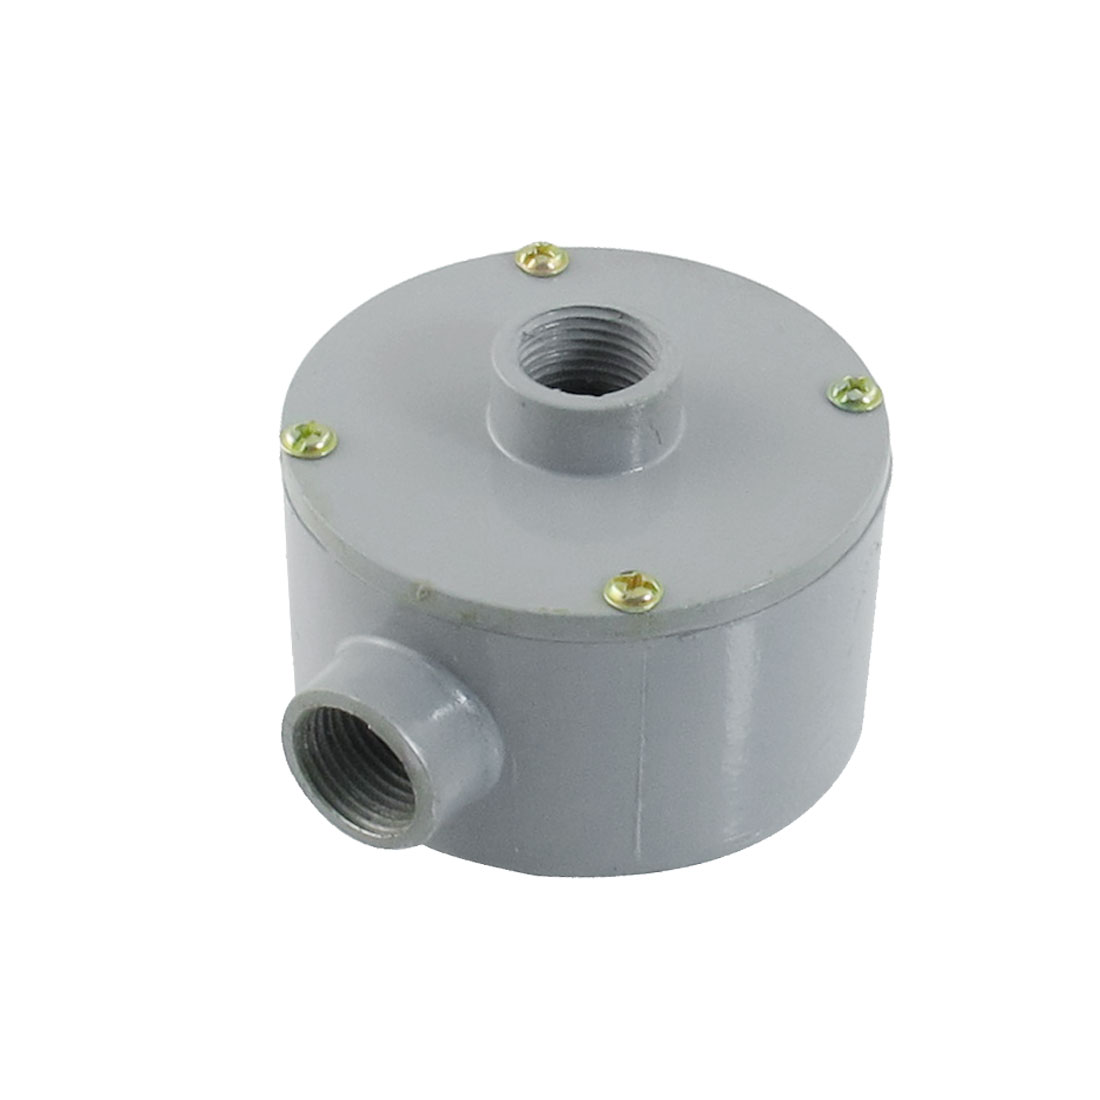 "G1/2"" Thread Two Holes Conduit Wiring Round Metal Junction Box"